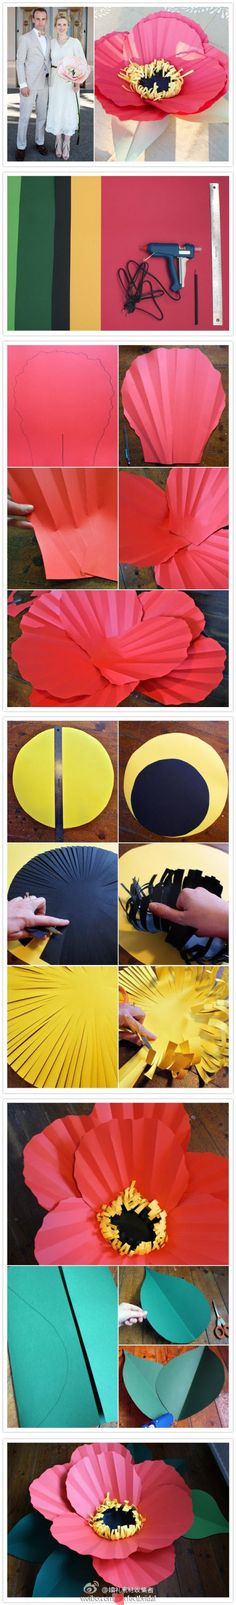 Wonderful #DIY giant poppies